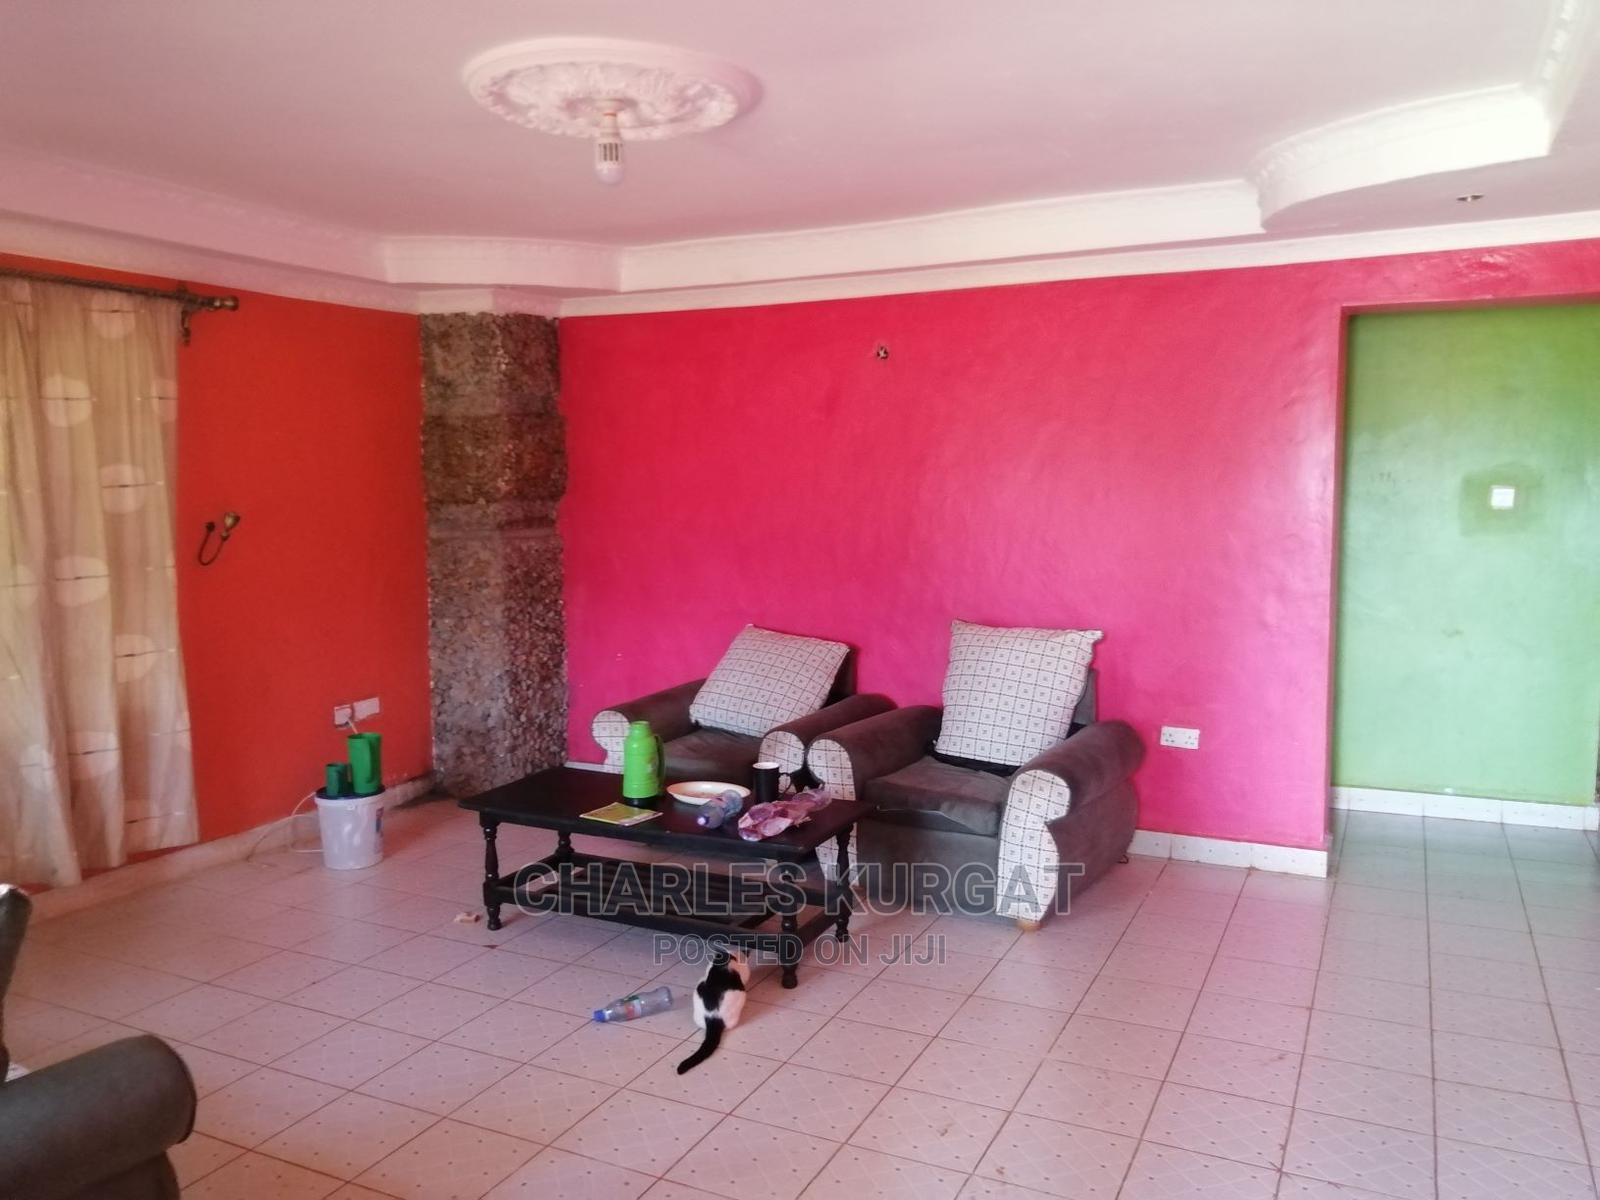 Three Bedrooms Bungalow on Sale in Matasia Ngong | Houses & Apartments For Sale for sale in Matasia, Ngong, Kenya